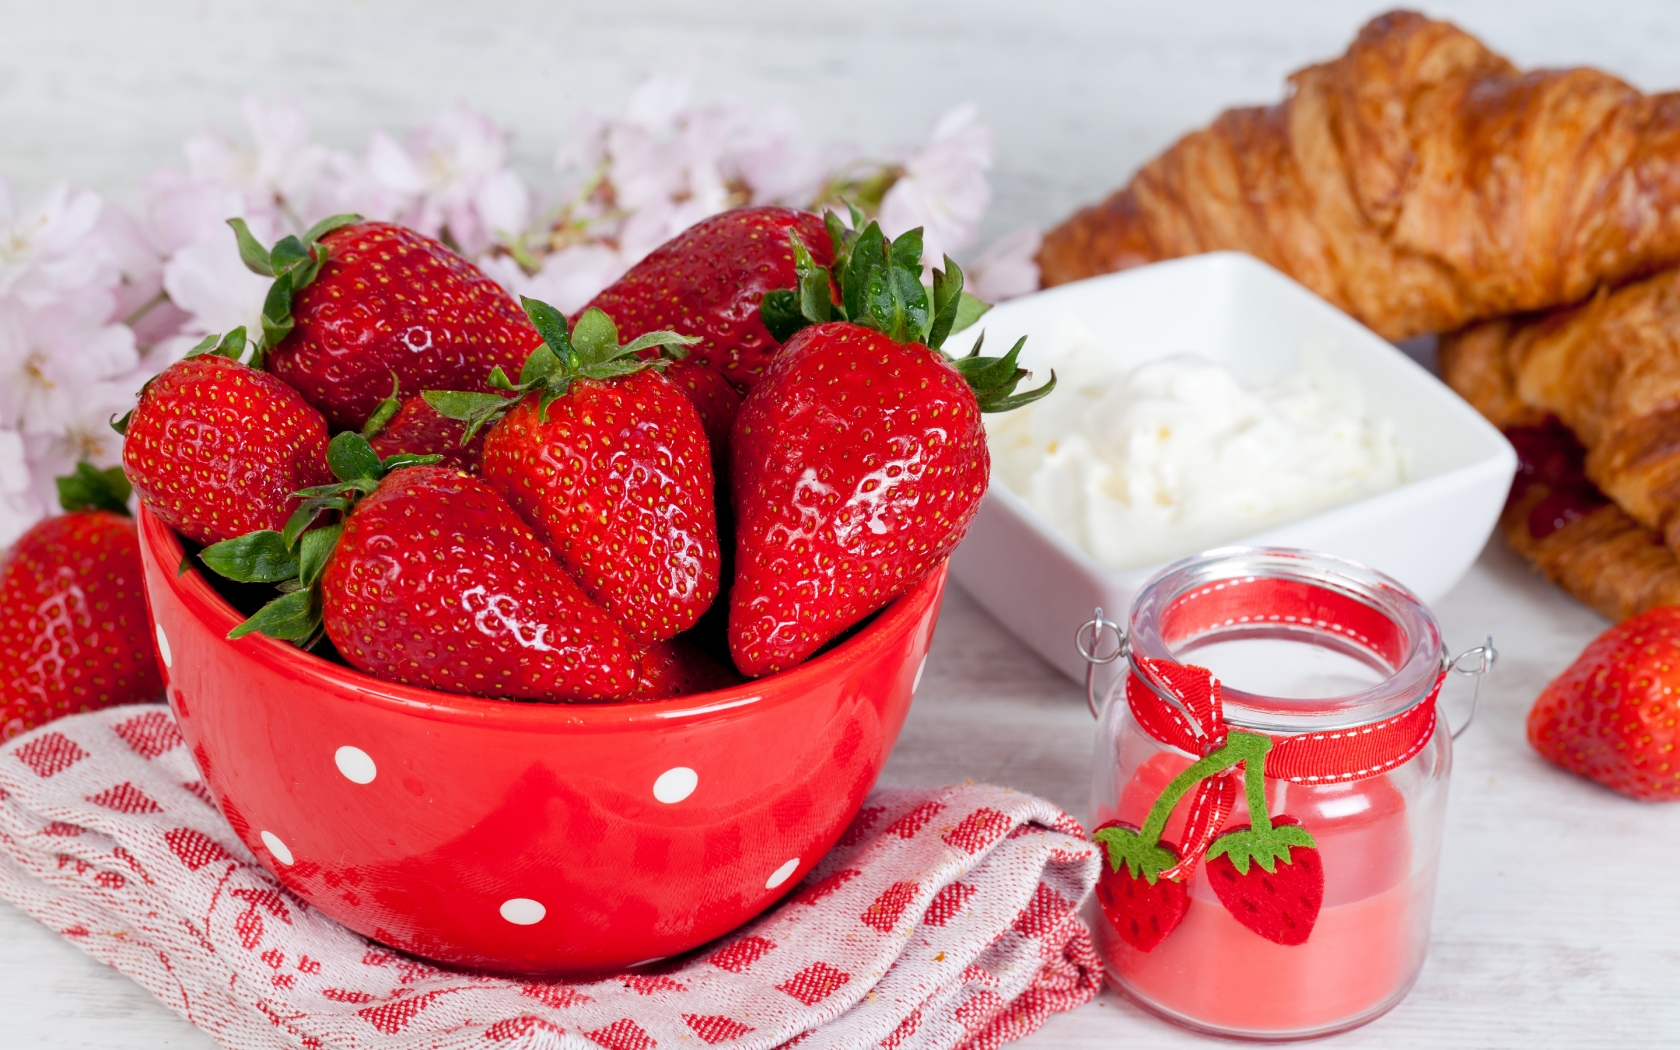 Strawberries and Sour Cream for 1680 x 1050 widescreen resolution